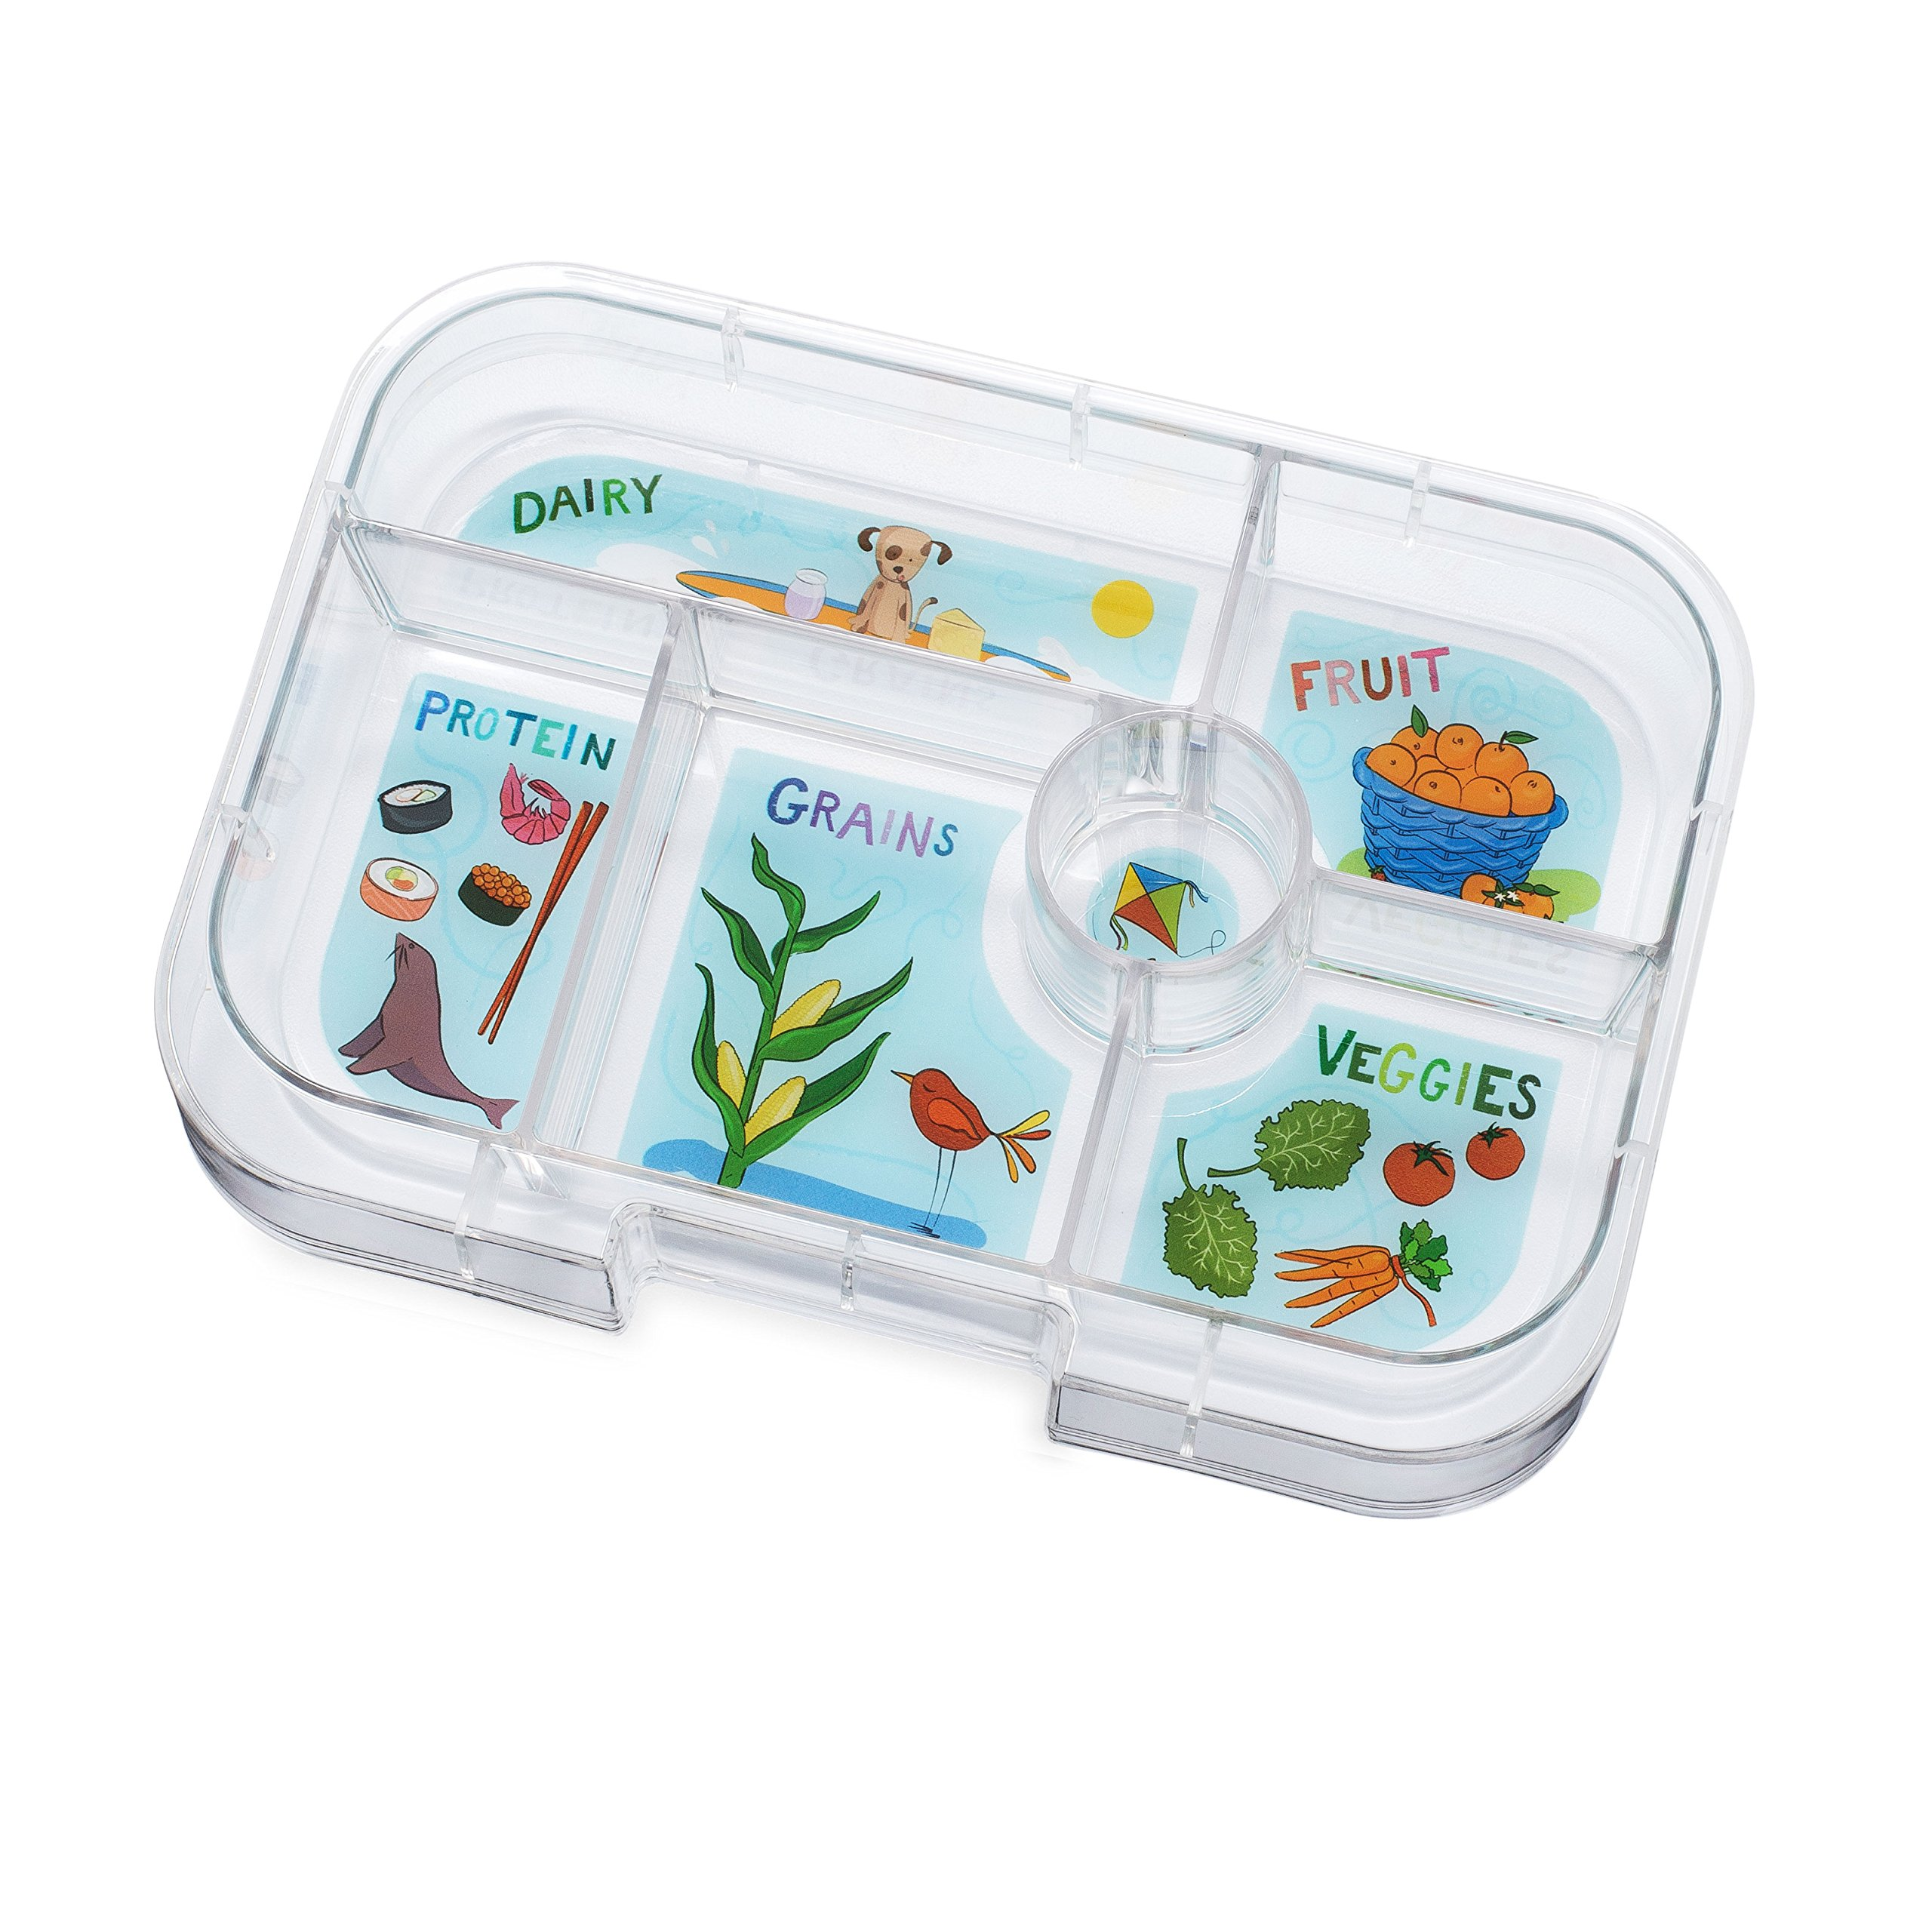 YUMBOX Original (Avocado Green) Leakproof Bento Lunch Box Container for Kids: Bento-style lunch box offers Durable, Leak-proof, On-the-go Meal and Snack Packing by Yumbox (Image #5)